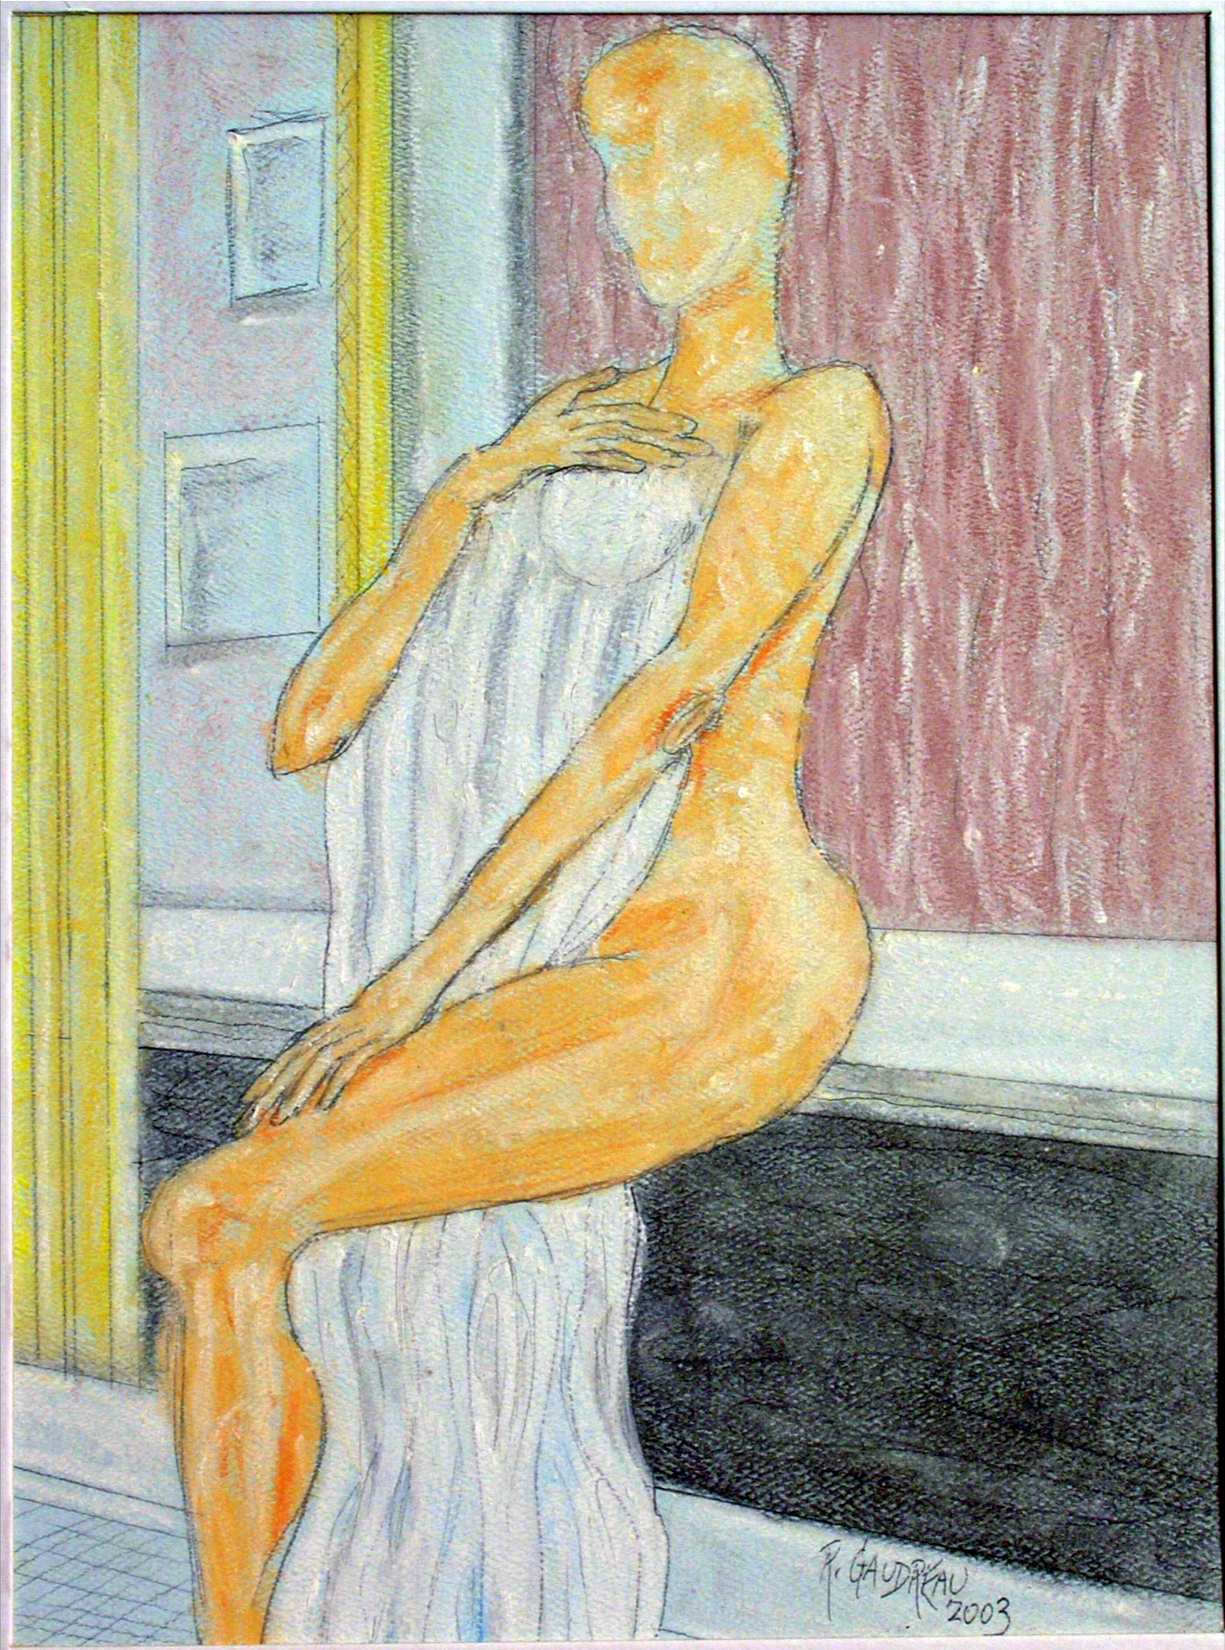 Woman with Towel  2003 pastel, charcoal on paper 11 x 14 inches